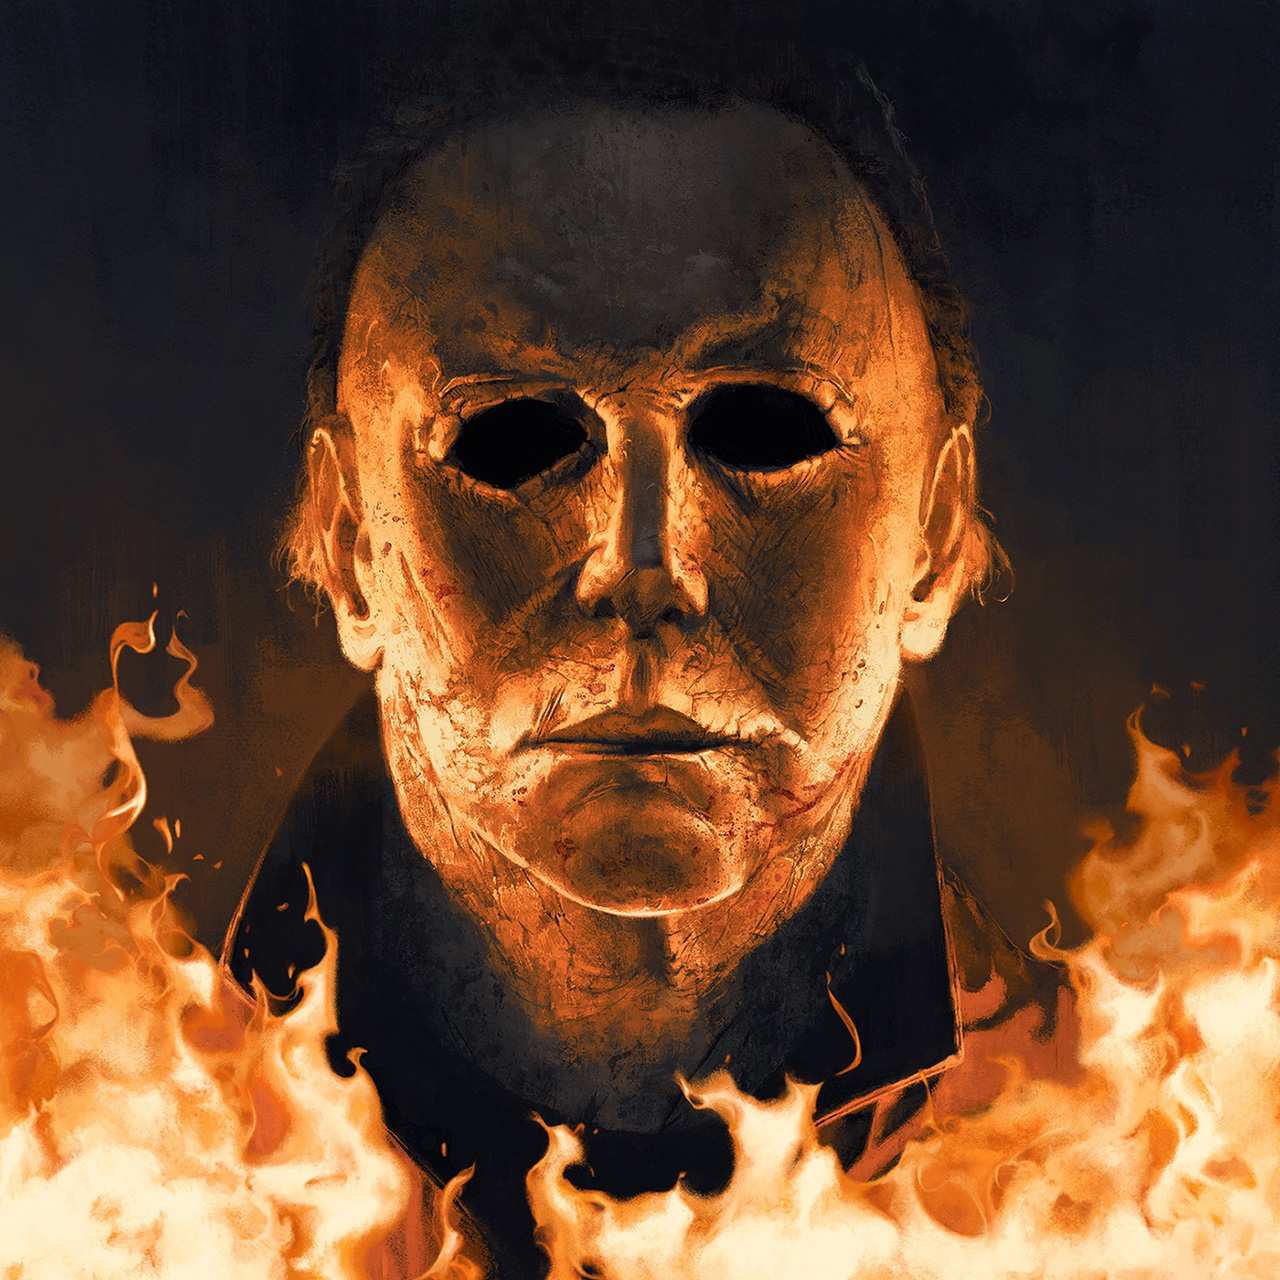 Master of horror John Carpenter to expand Halloween soundtrack | Louder